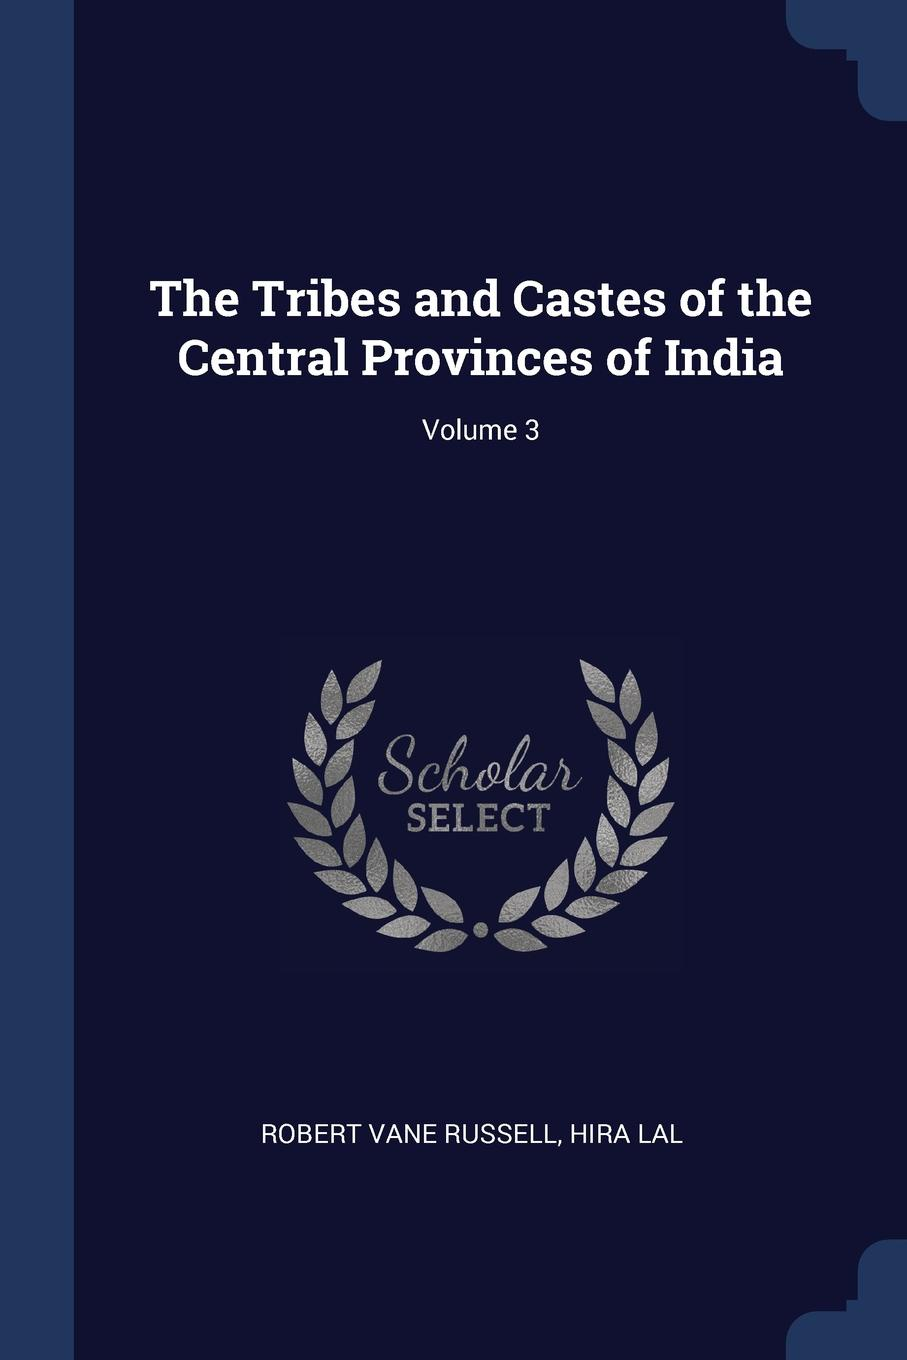 The Tribes and Castes of the Central Provinces of India; Volume 3. Robert Vane Russell, Hira Lal